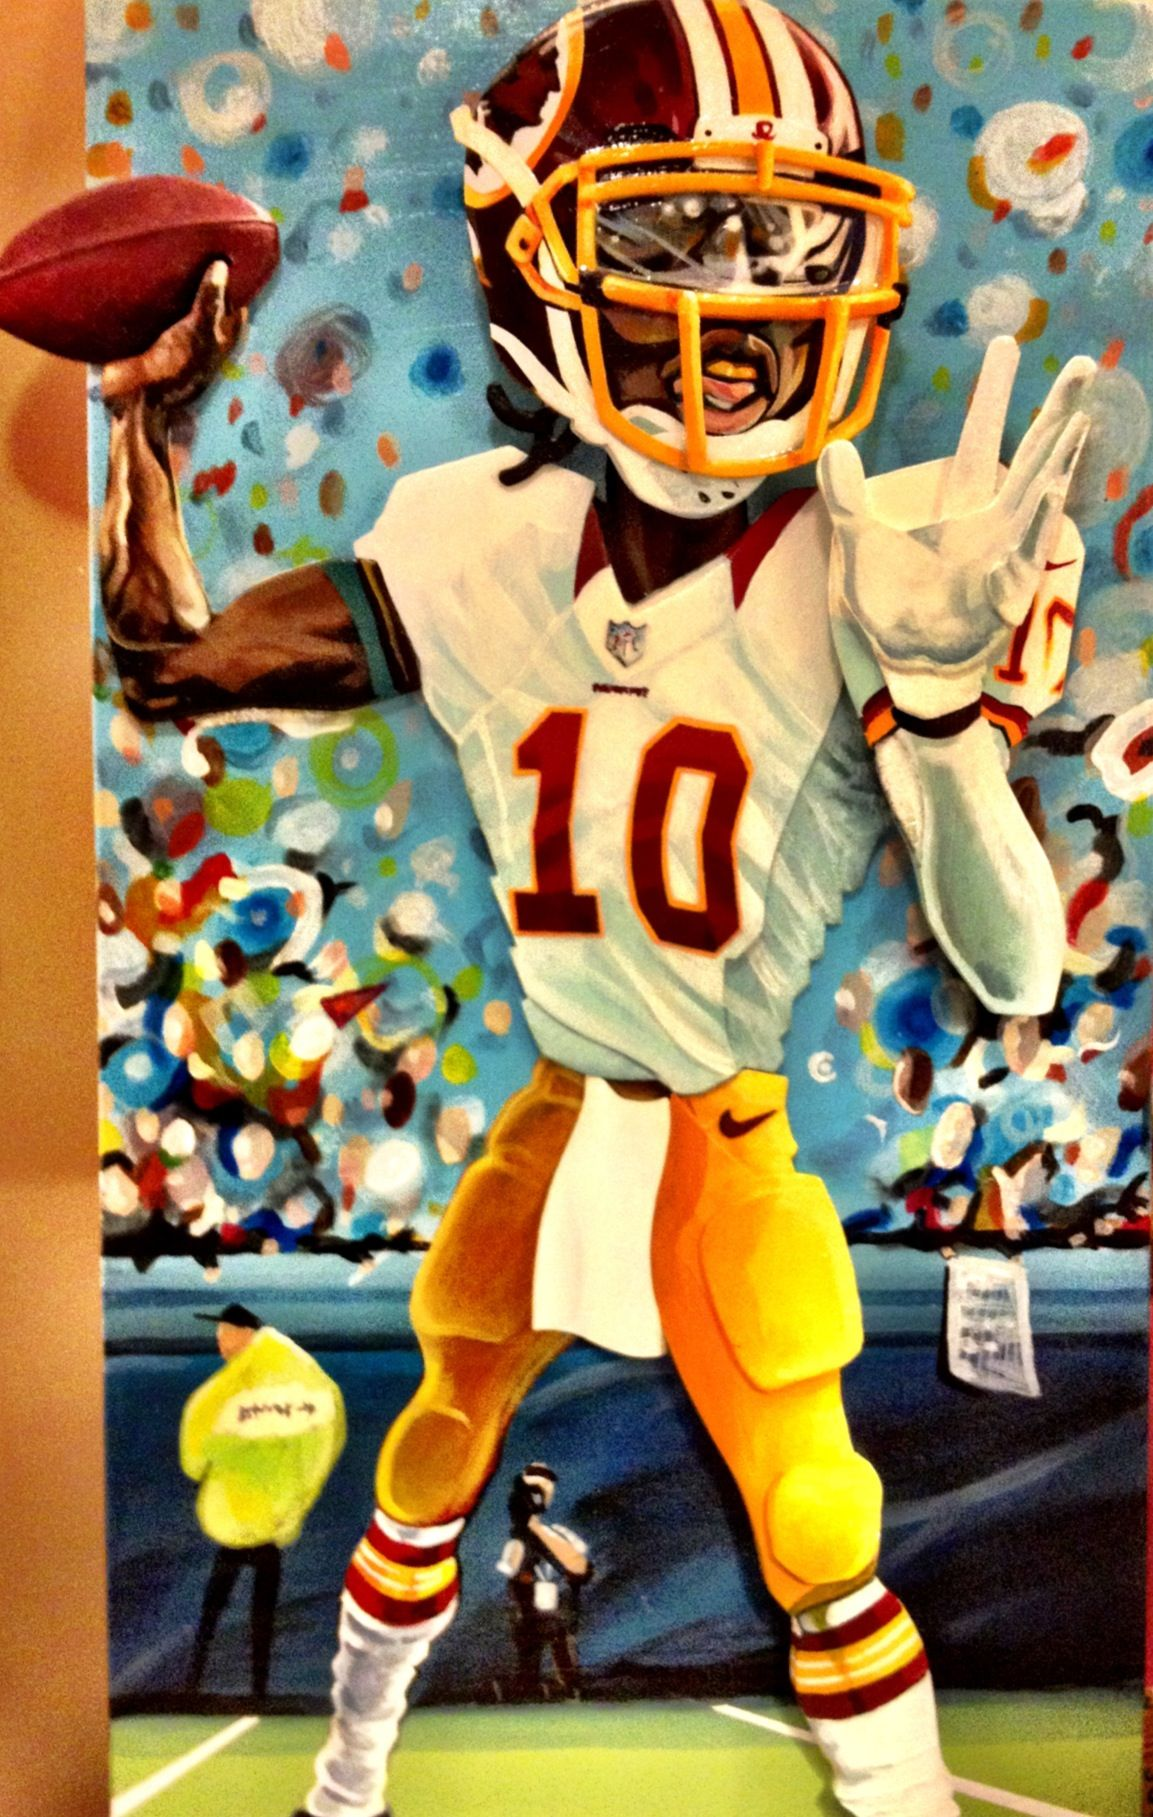 PopPop Art RG3, Redskins Sports art, Redskins logo